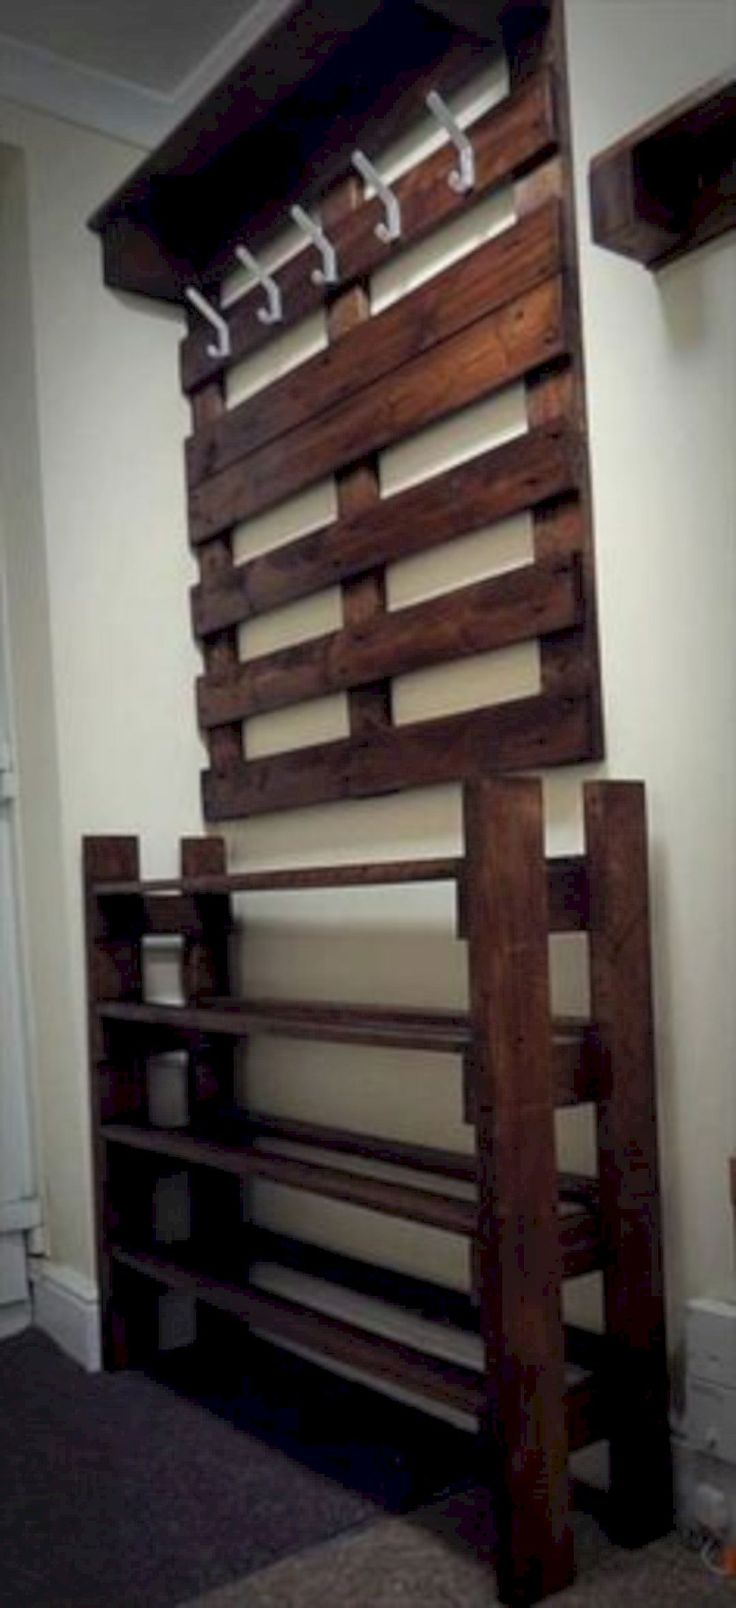 best 25 diy shoe rack ideas on pinterest shoe shelf diy shoe rack and shoe rack pallet. Black Bedroom Furniture Sets. Home Design Ideas